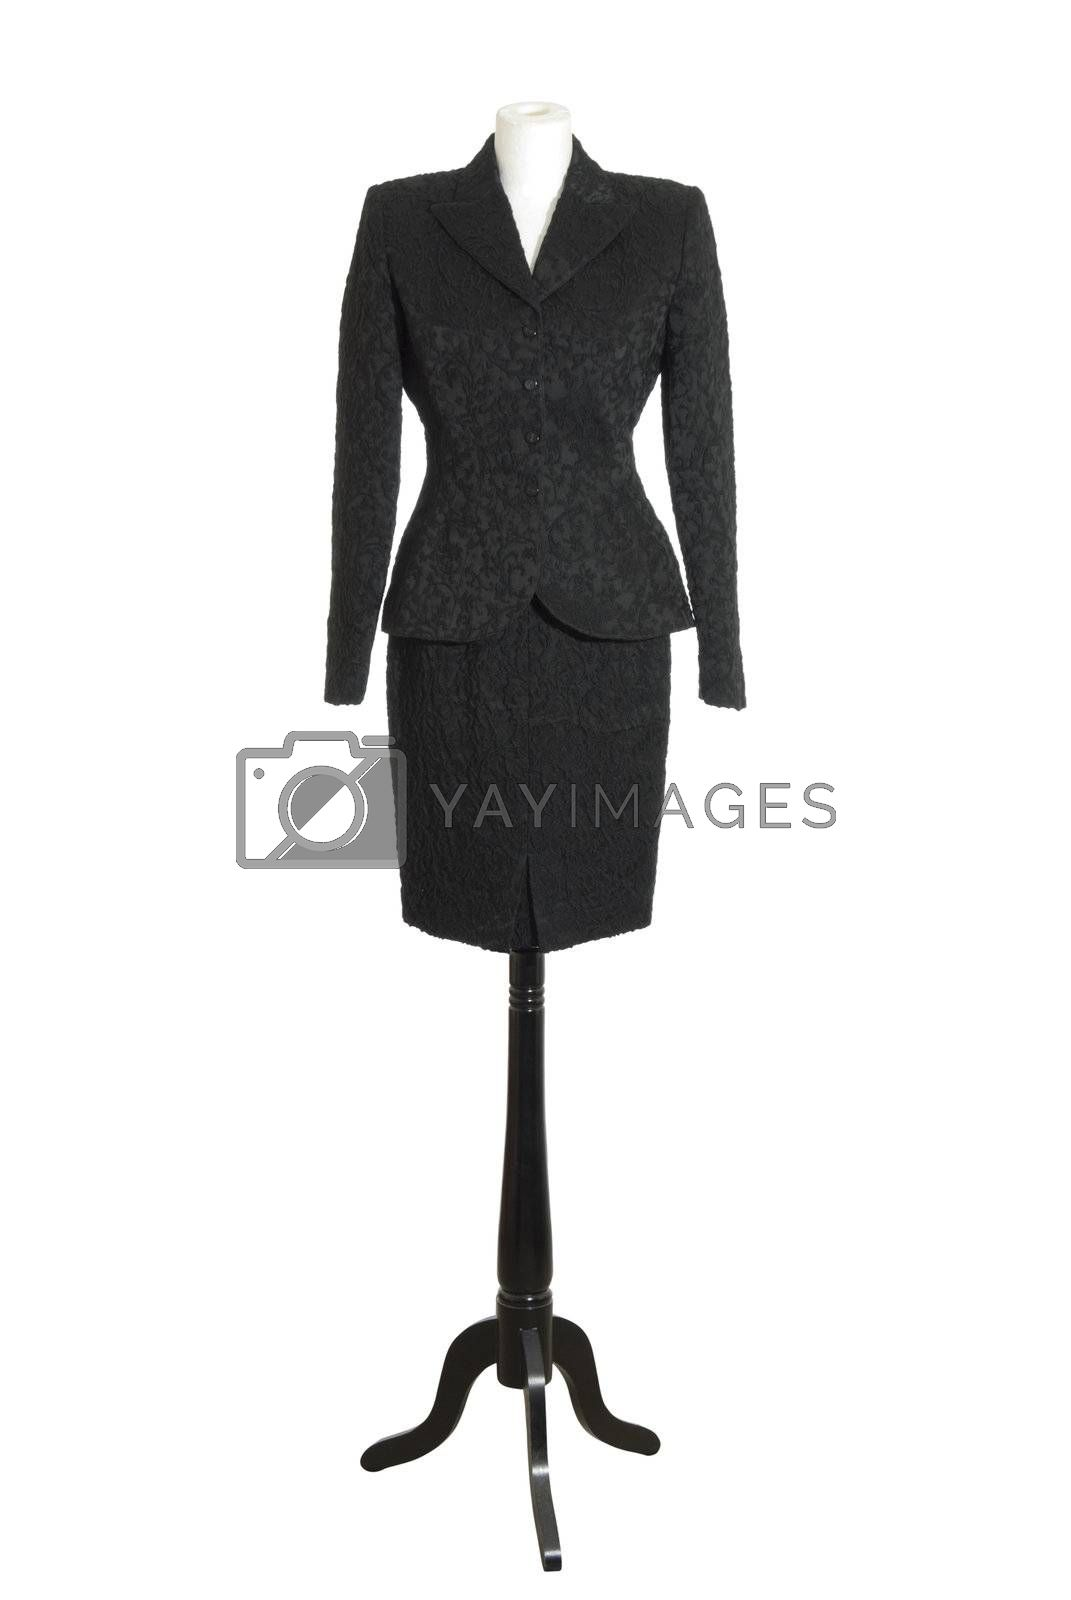 Royalty free image of Mannequin in suit| Isolated by zakaz